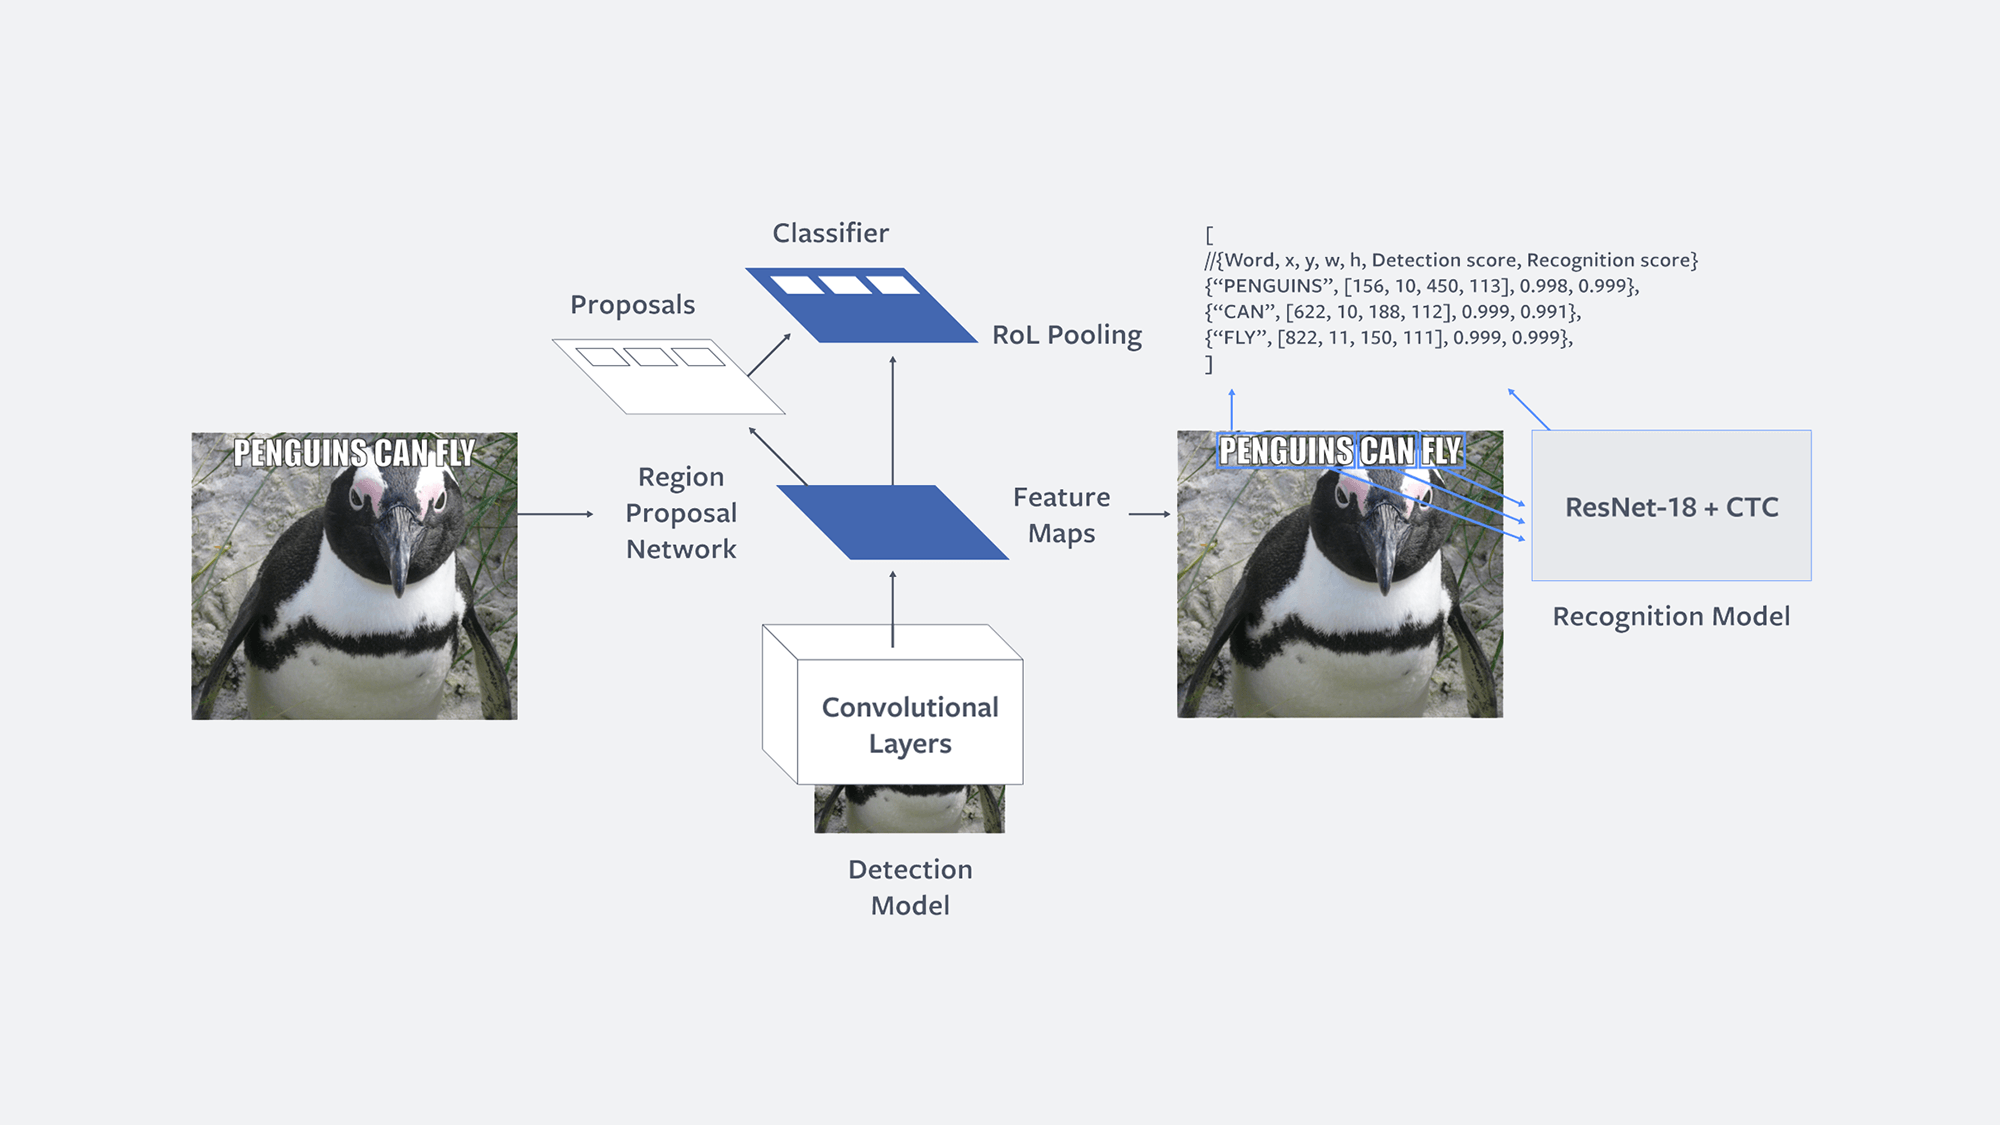 Facebook's 'Rosetta' AI can extract text from a billion images daily